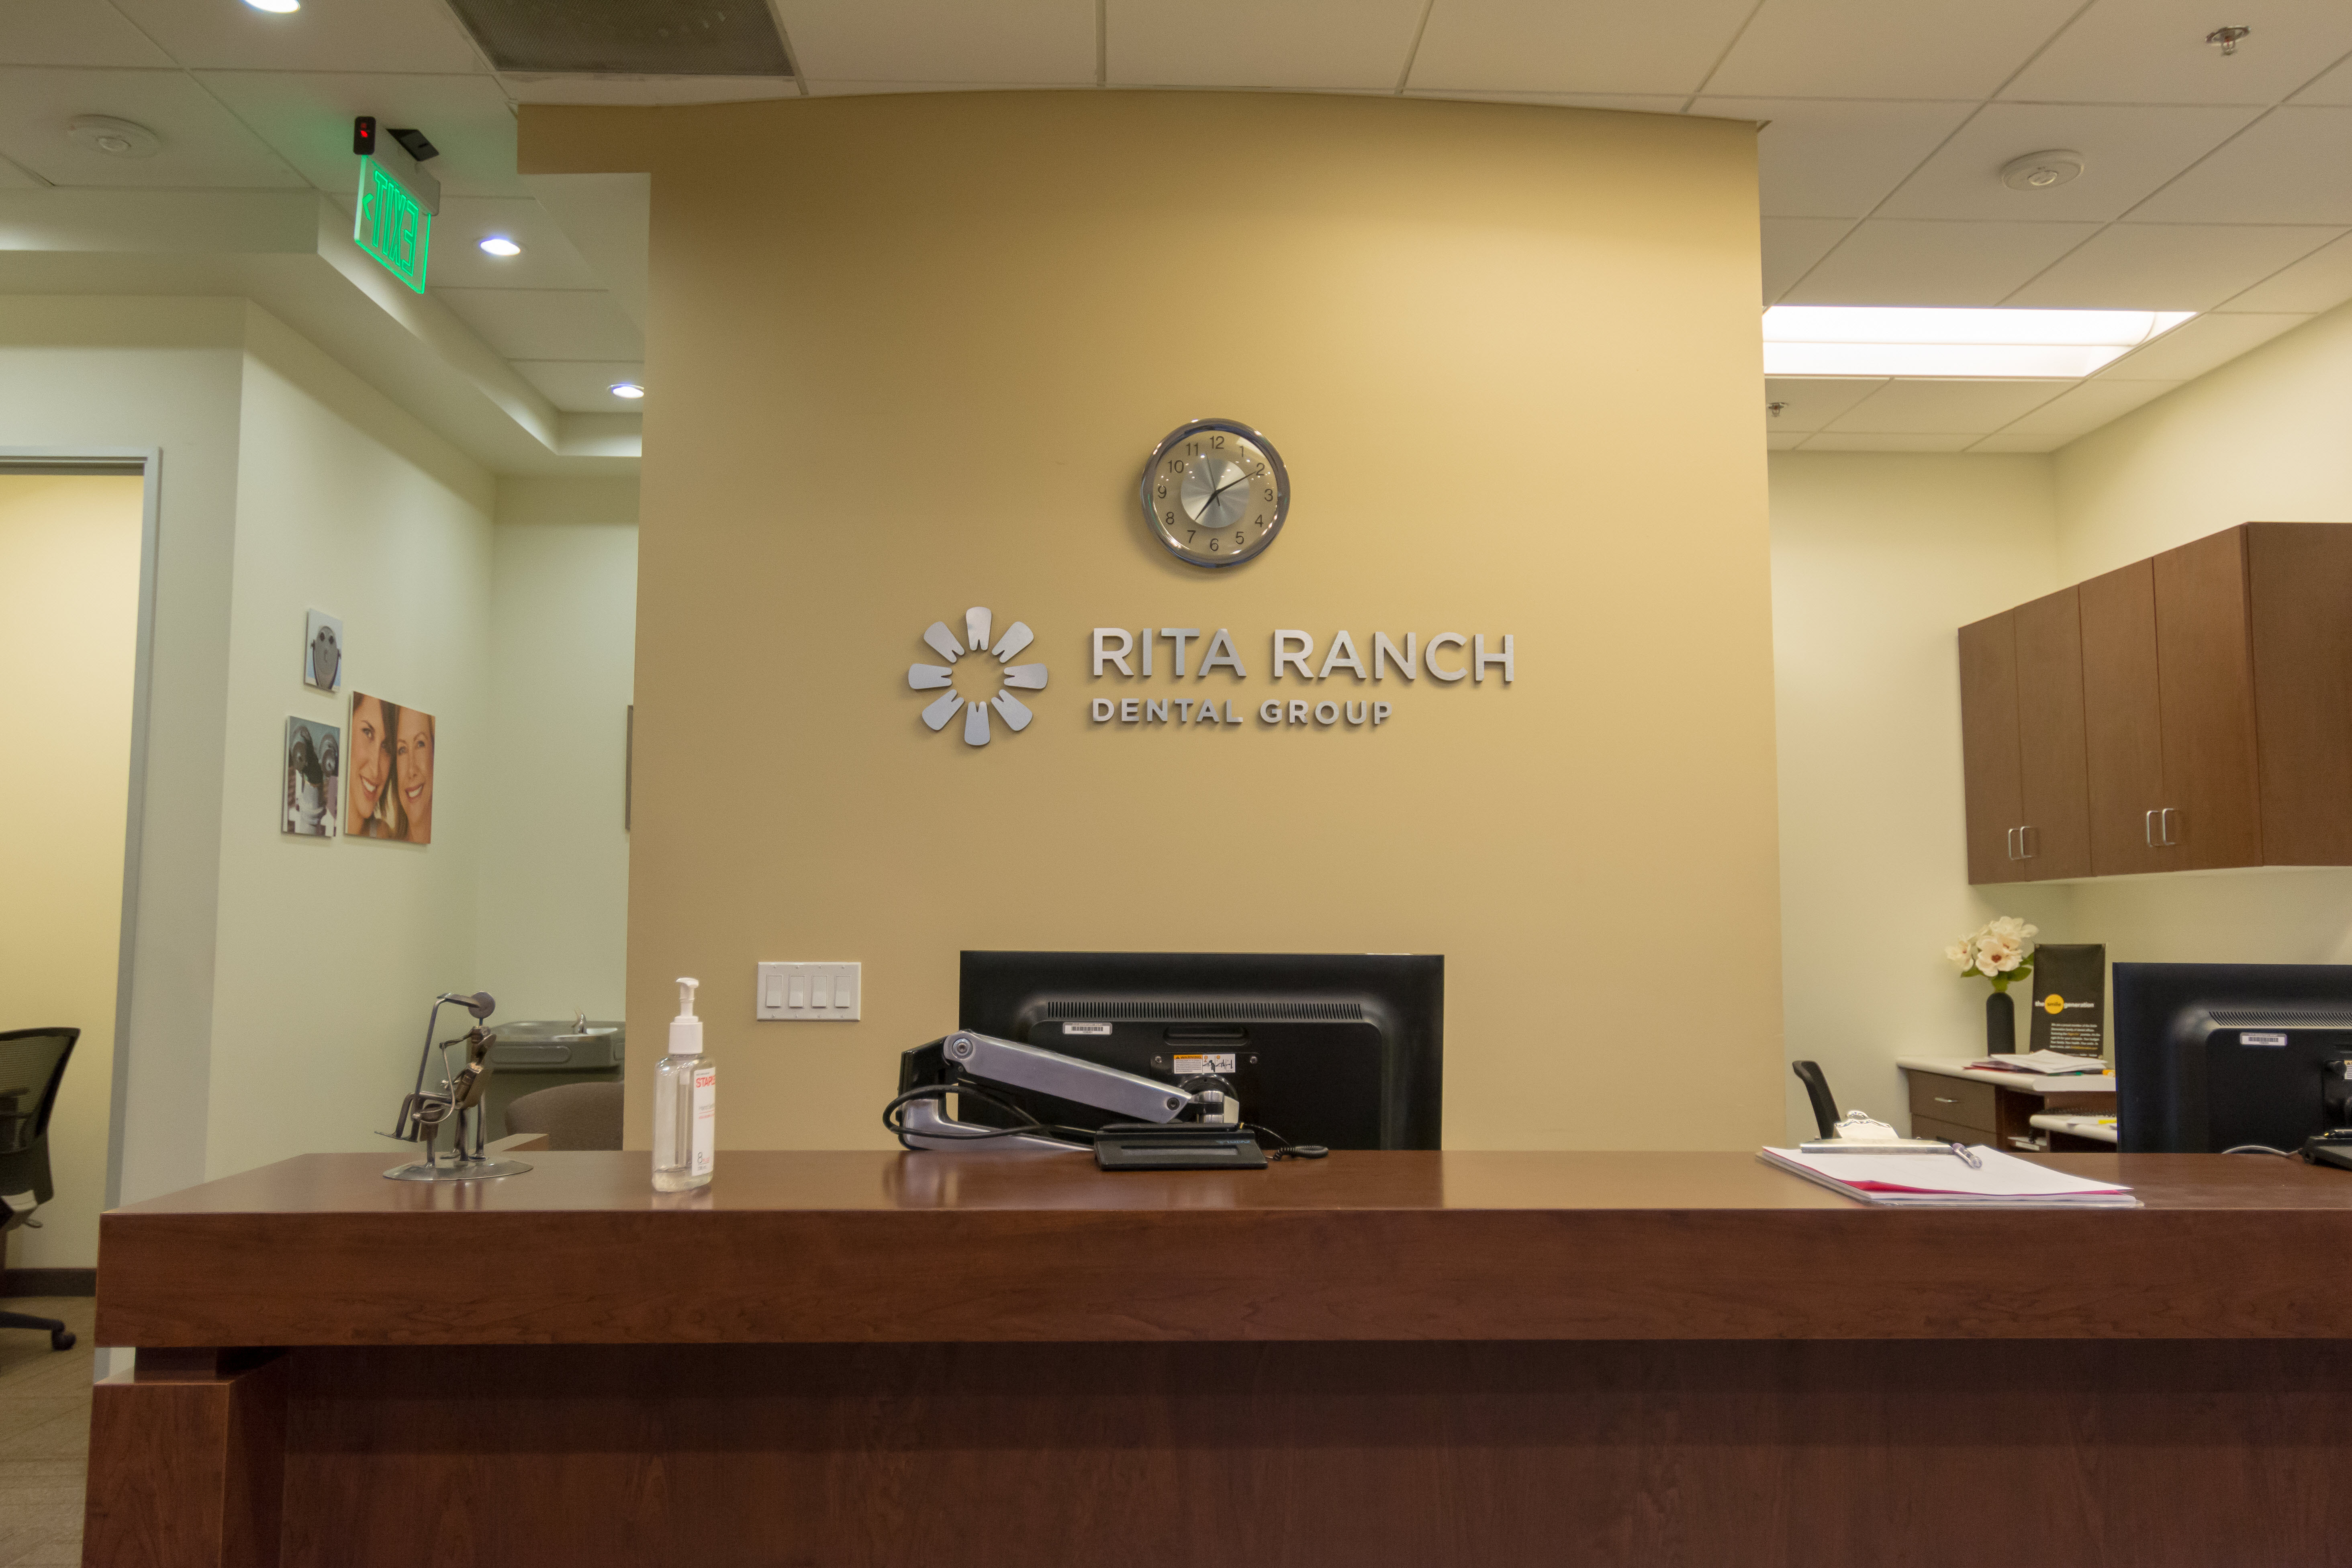 Rita Ranch Dental Group and Orthodontics image 4